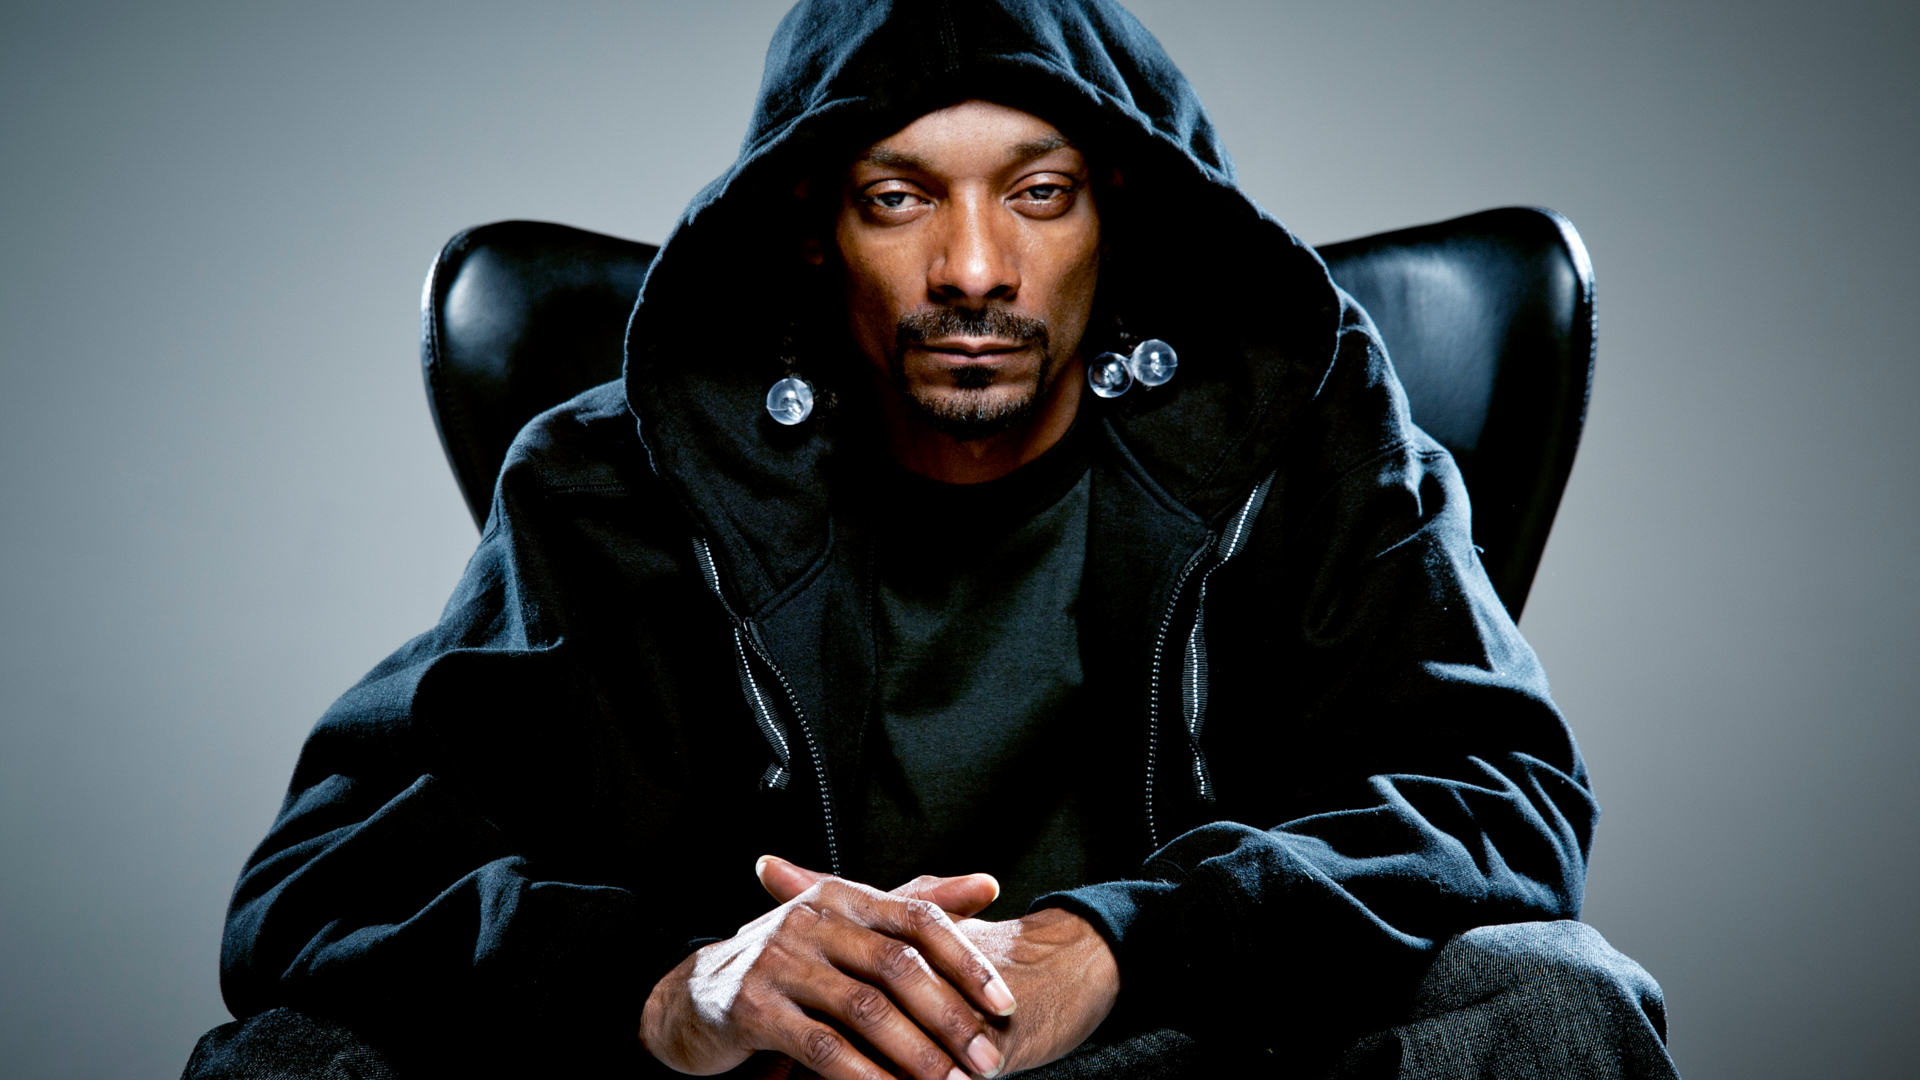 211 Snoop Dogg Wants To Be The Next CEO Of Twitter